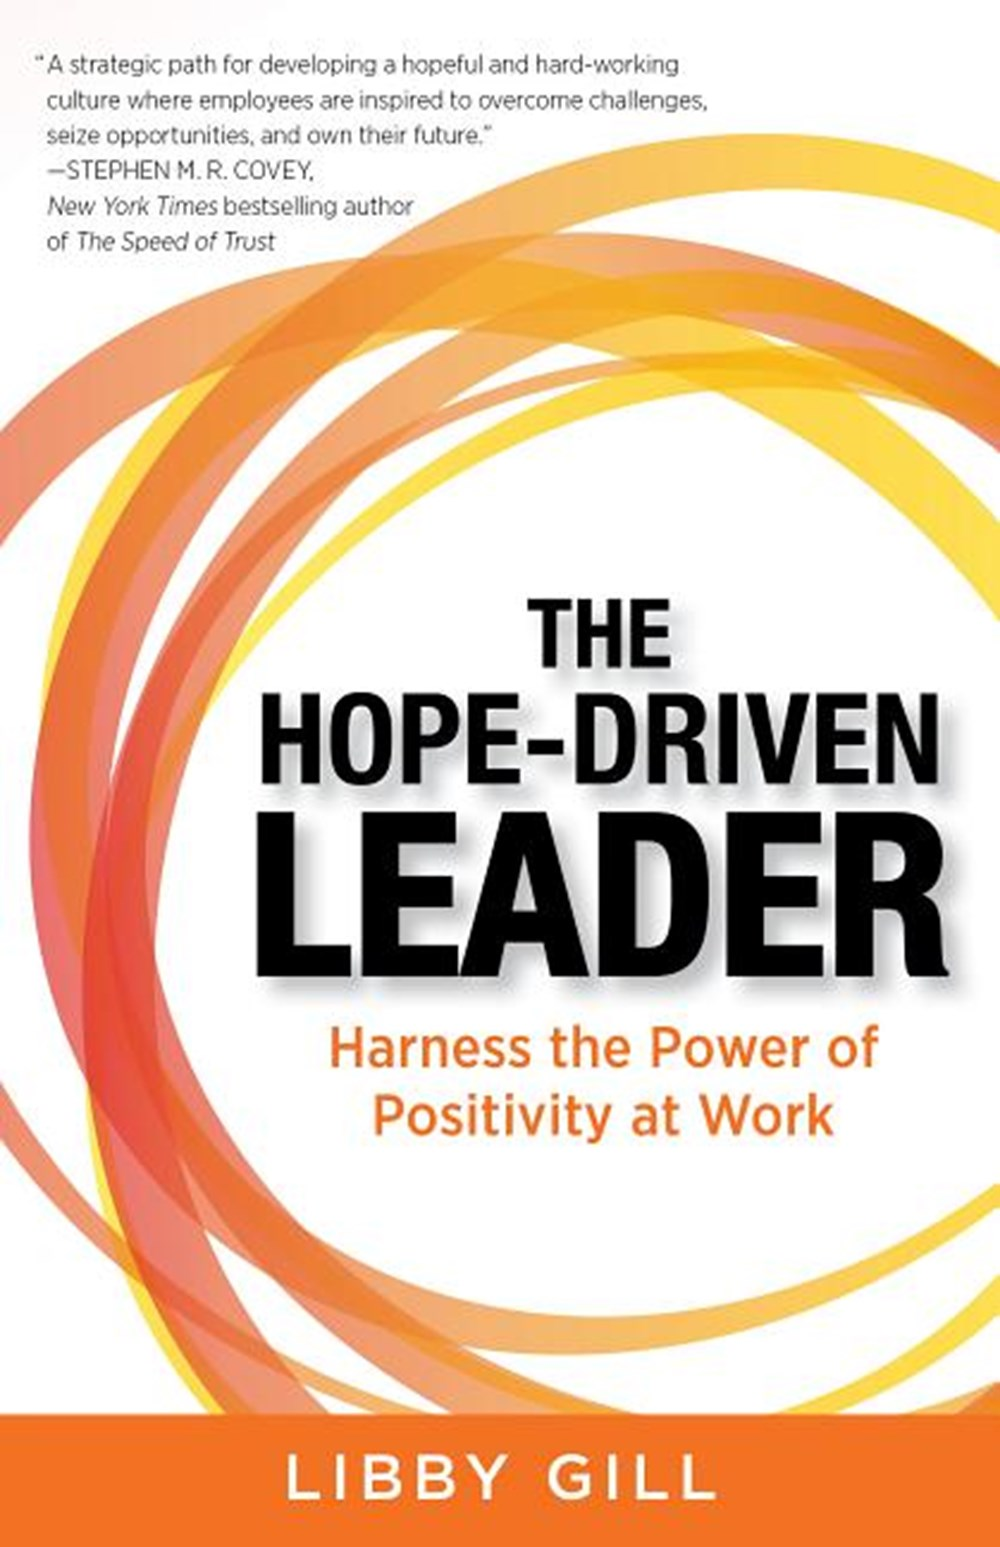 Hope-Driven Leader Harness the Power of Positivity at Work